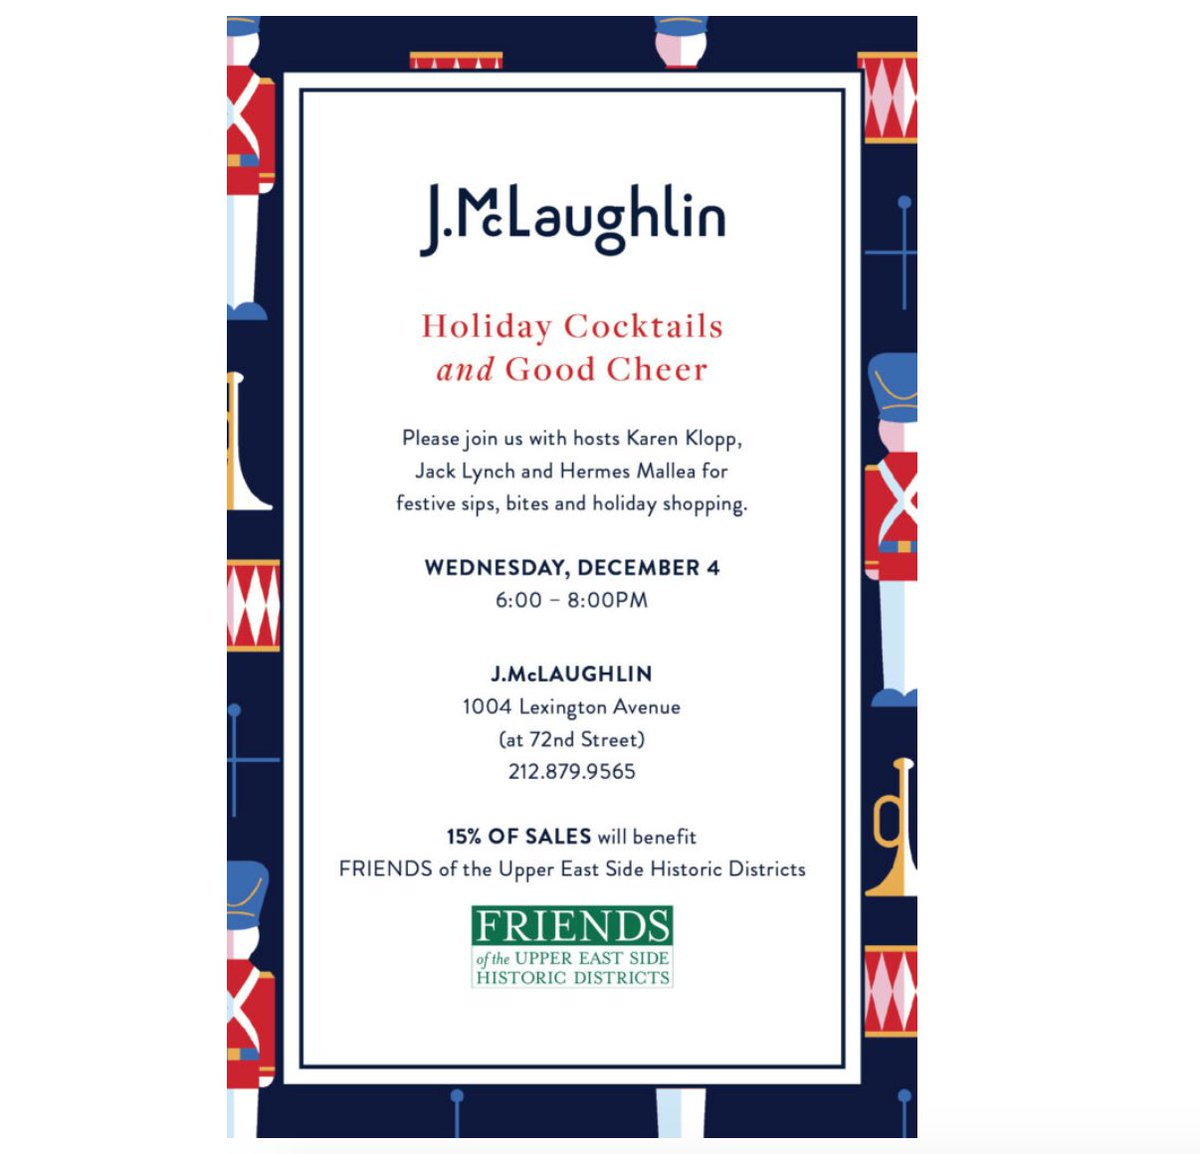 TOMORROW EVENING: Join us for a festive evening of holiday shopping and cocktails at @JMcLaughlinNY on Lexington Avenue    https:// what2wearwhere.com/j-mclaughlin-p artay/  …   #nycparty #holidaynyc #christmasnyc #nyholiday #jmclaughlin <br>http://pic.twitter.com/4avY7Gj7iD